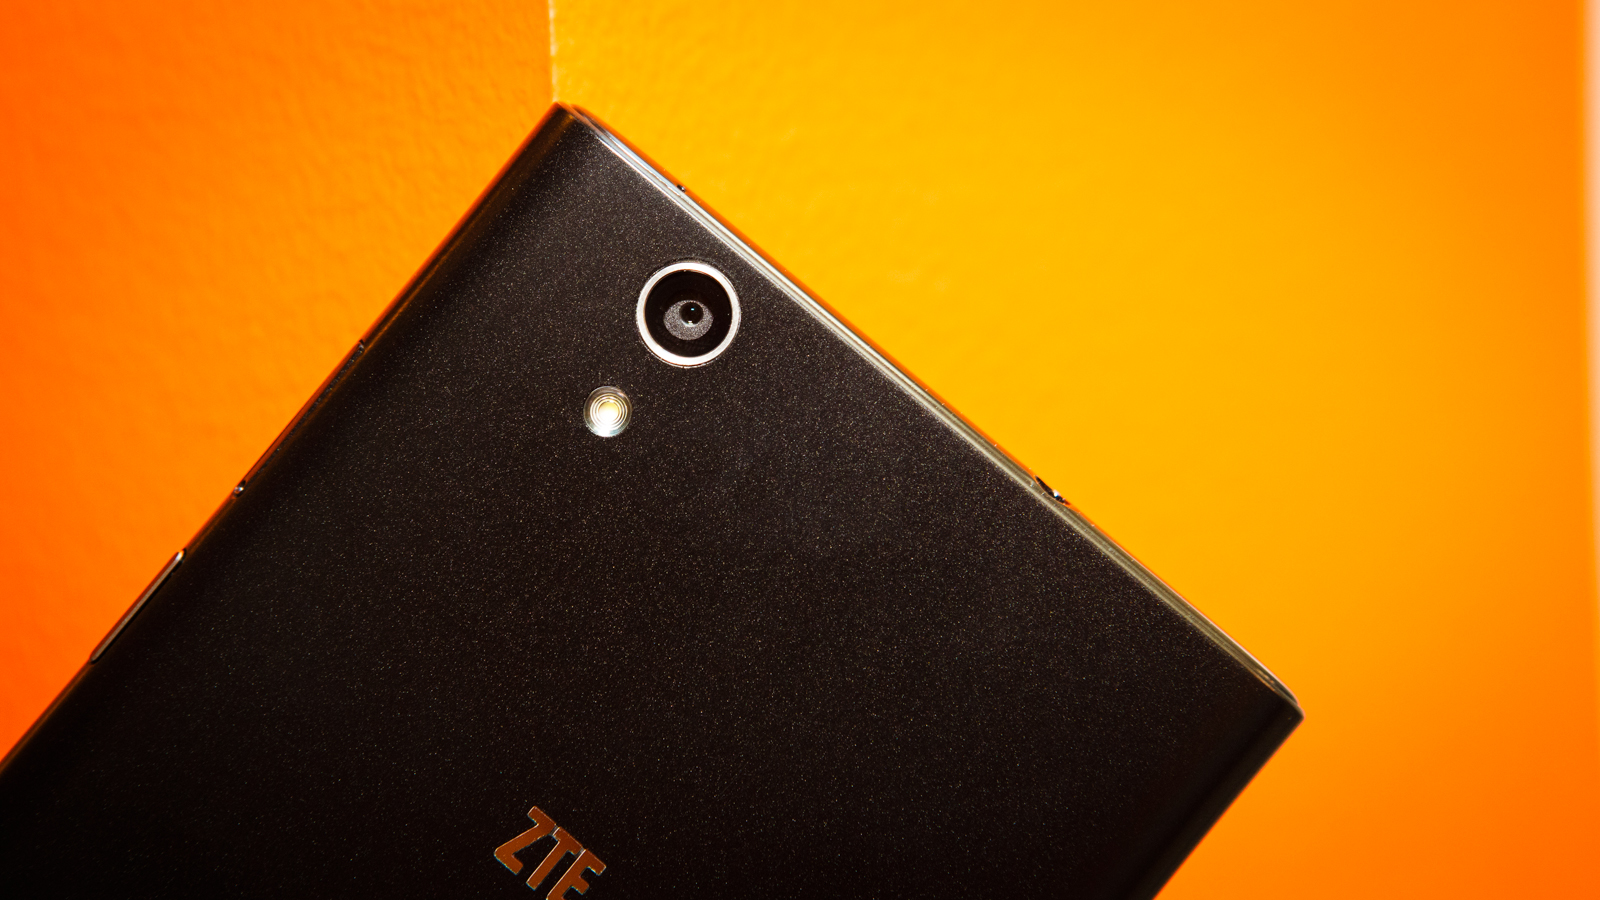 An 8-megapixel camera on the back